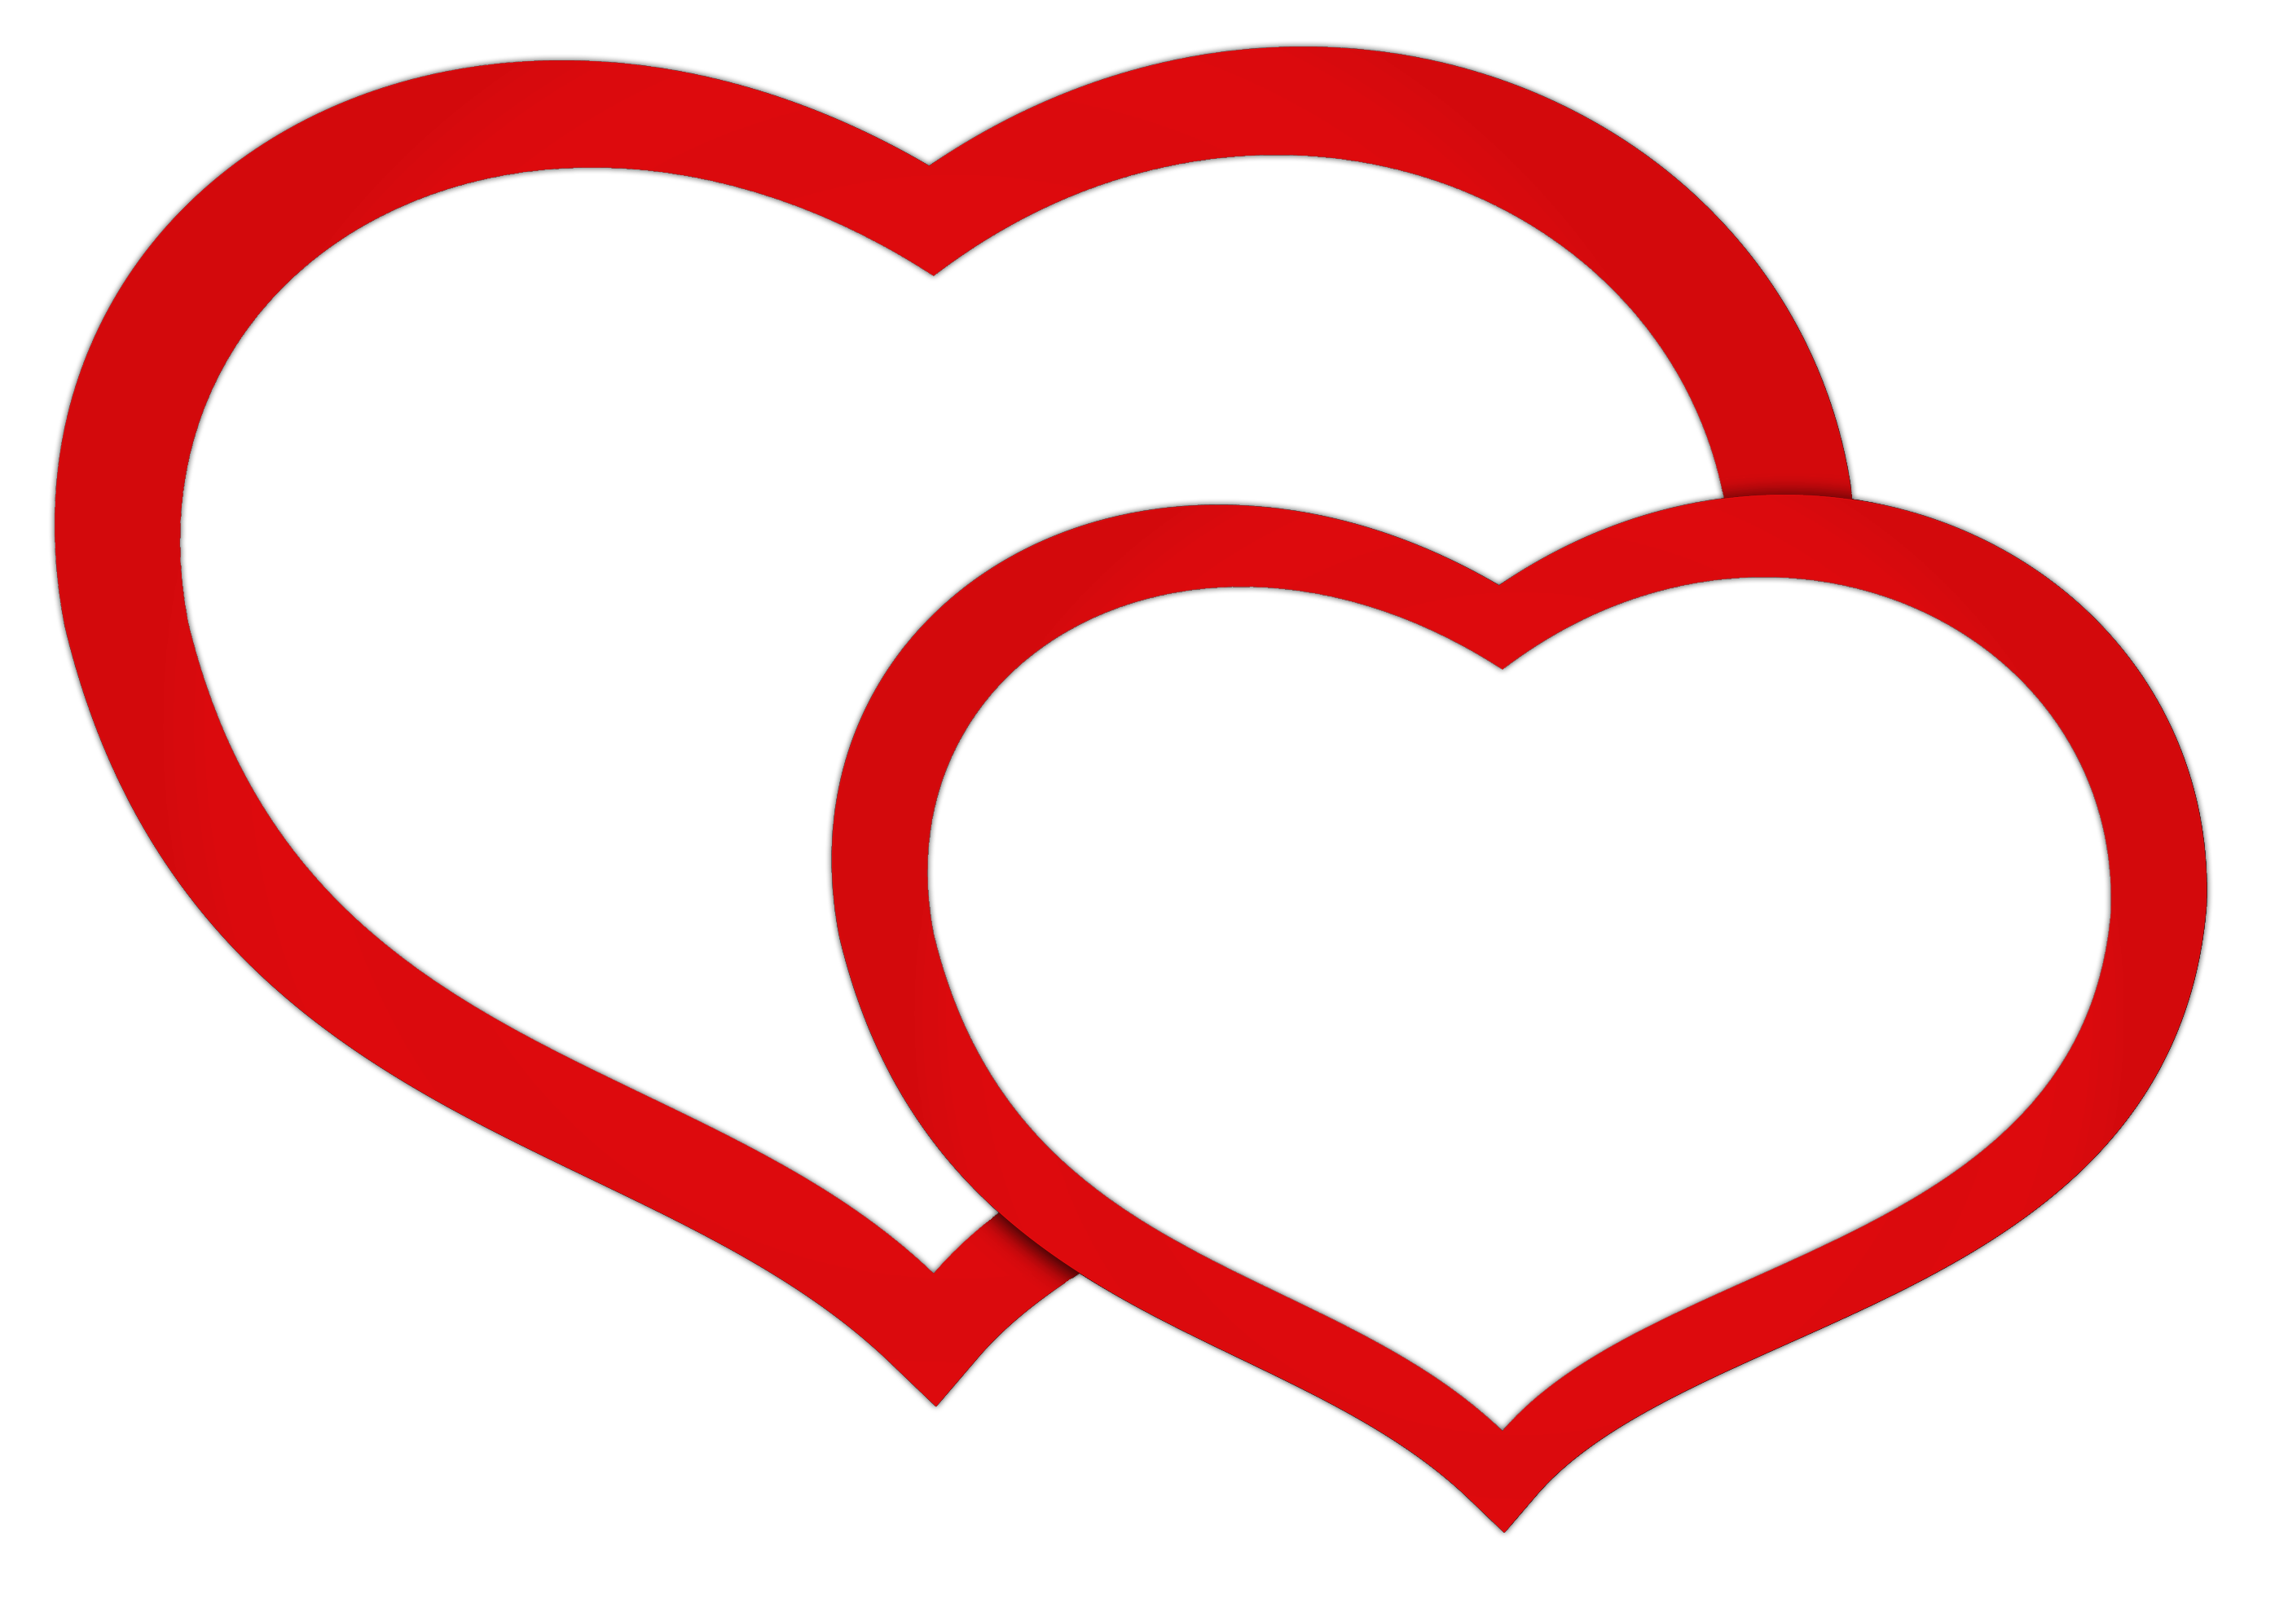 Free double hearts pictures. Heart clipart water clip art royalty free stock